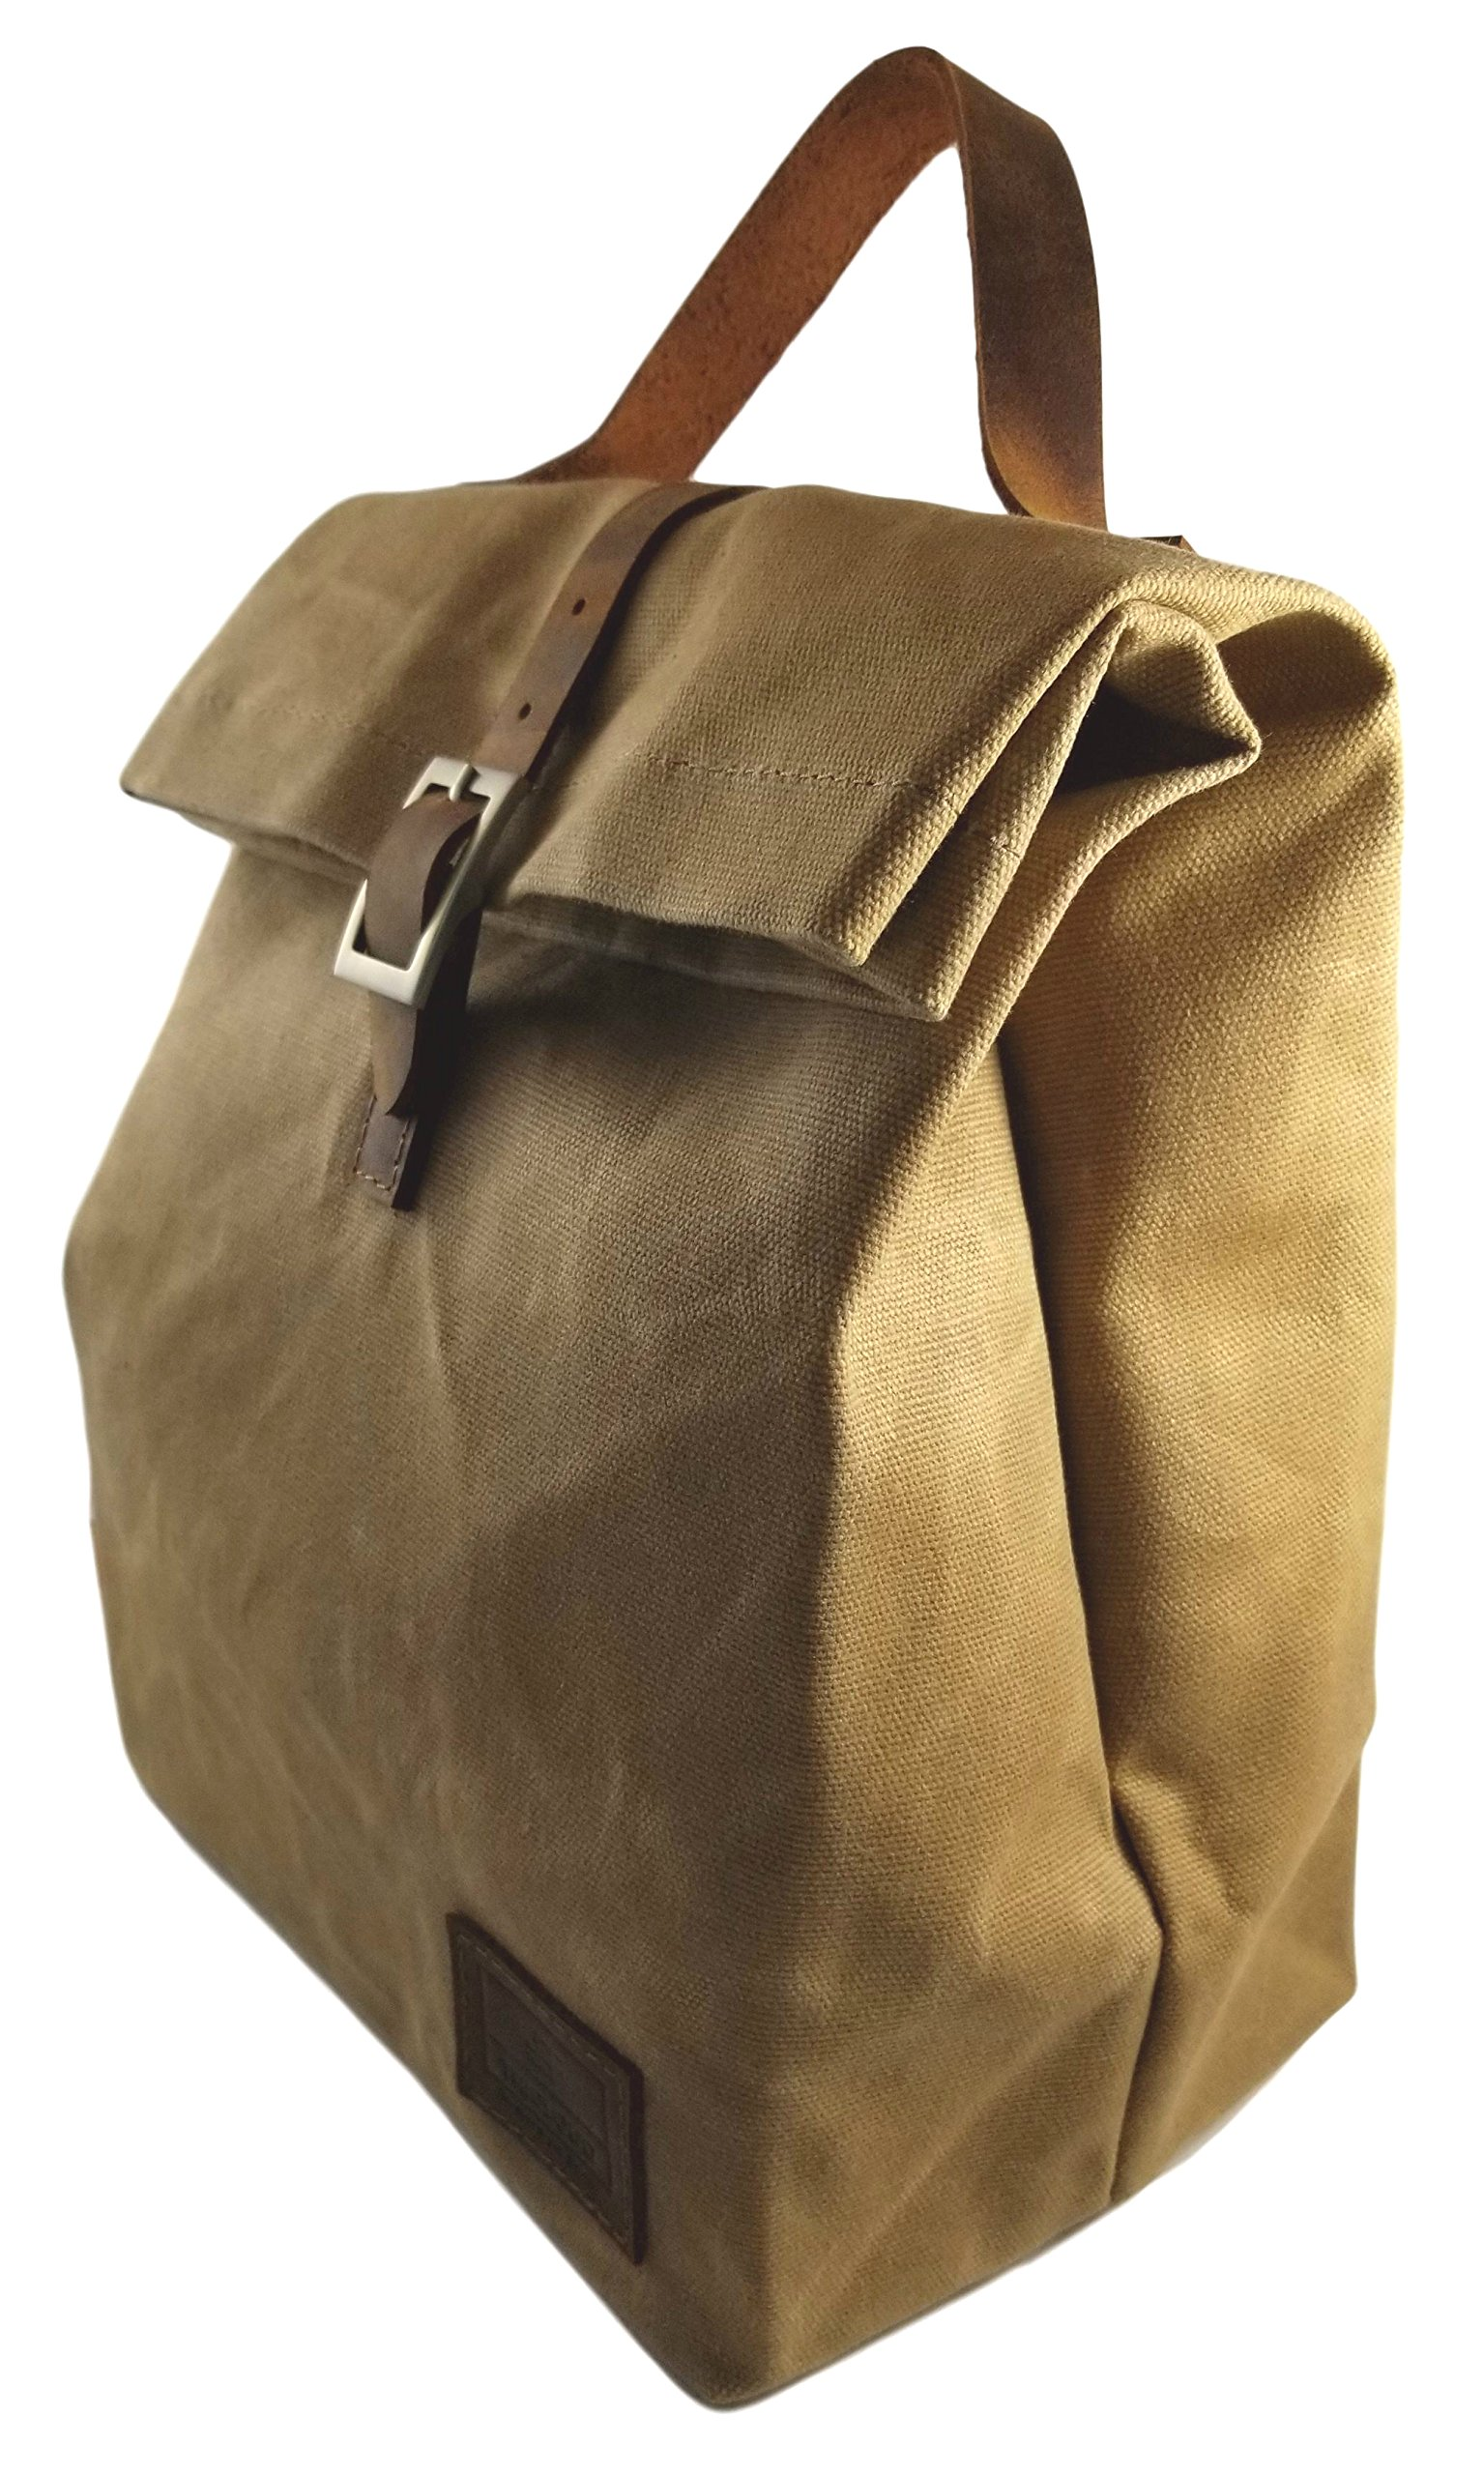 Reusable Thermal Insulated Lunch Bag with handle - Waxed Canvas - Waterproof (Brown)